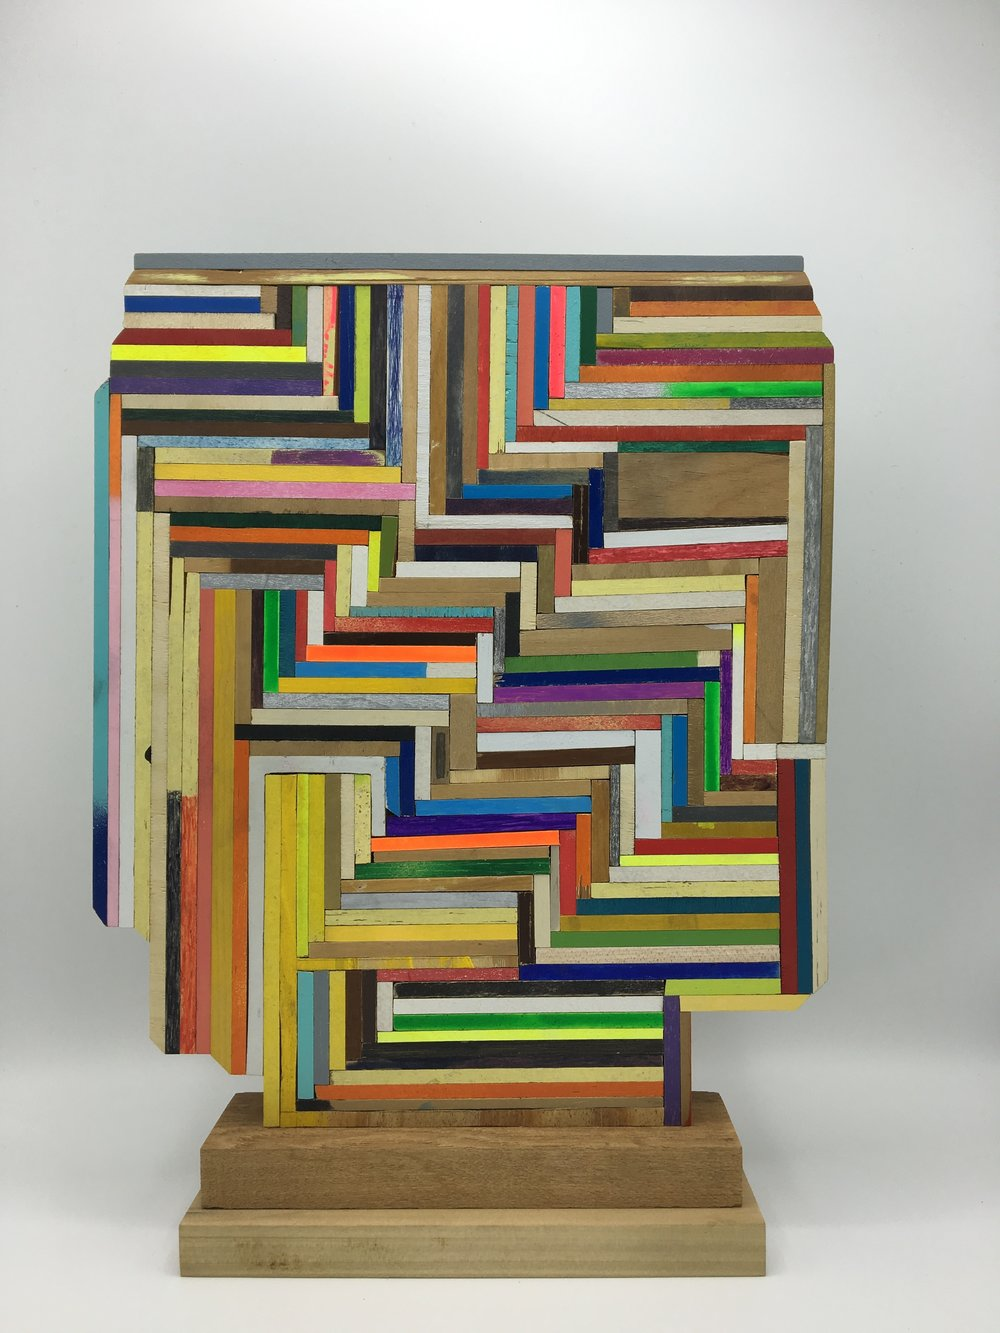 Monument, 2016 Wood, Paint, Colored Pencil, Glue 14 x 11 x 3 in.